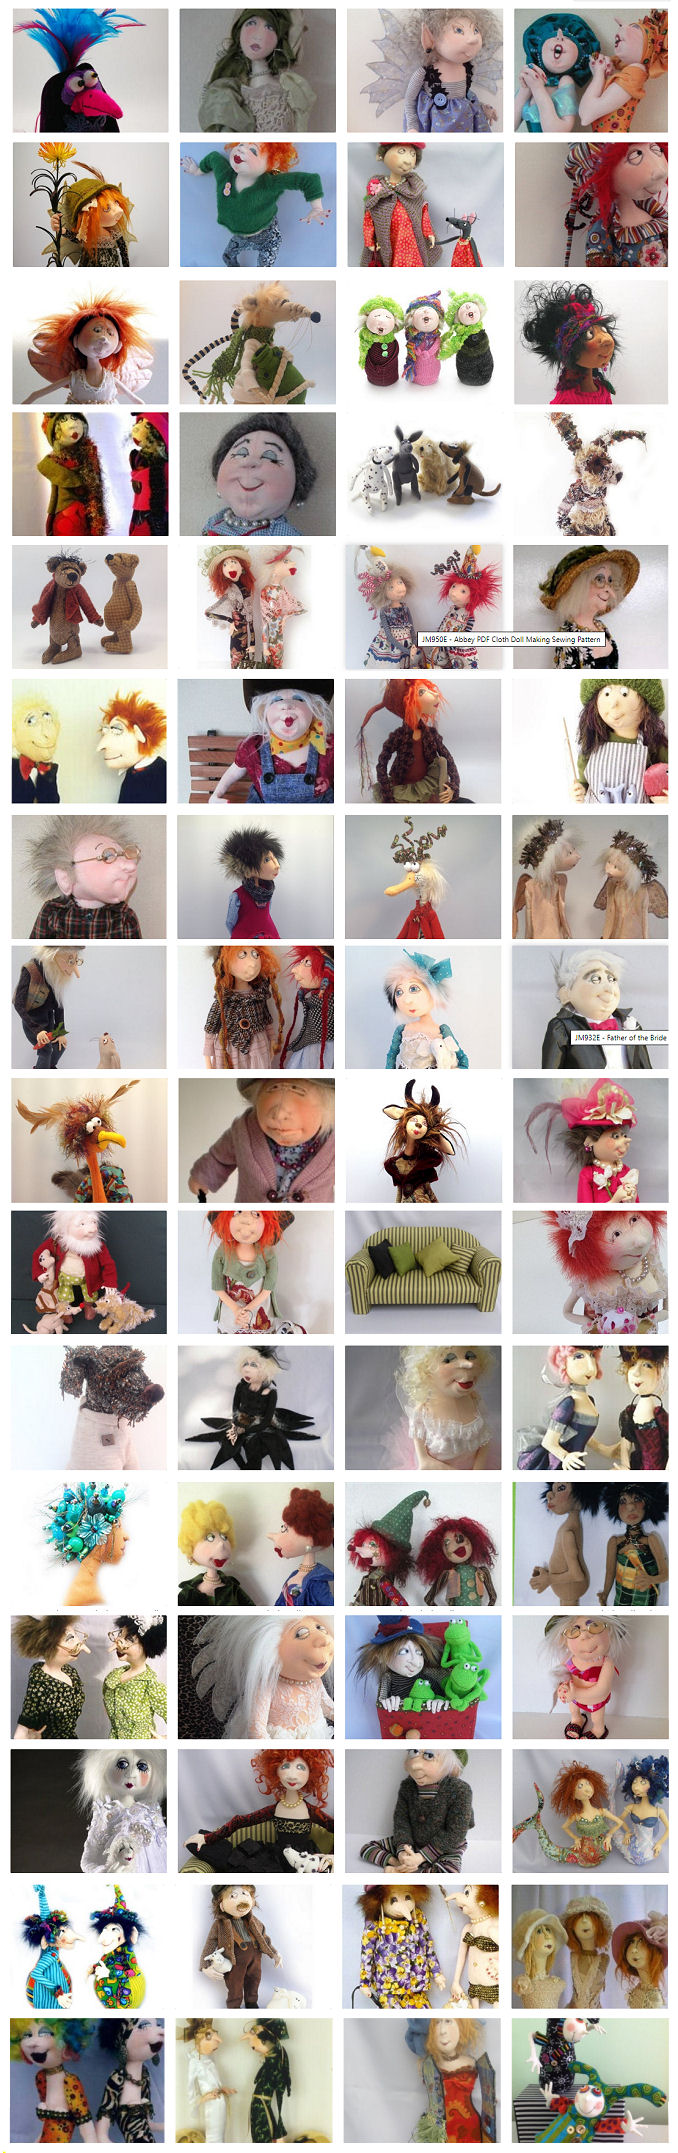 Cloth Doll Designs by Jill Maas